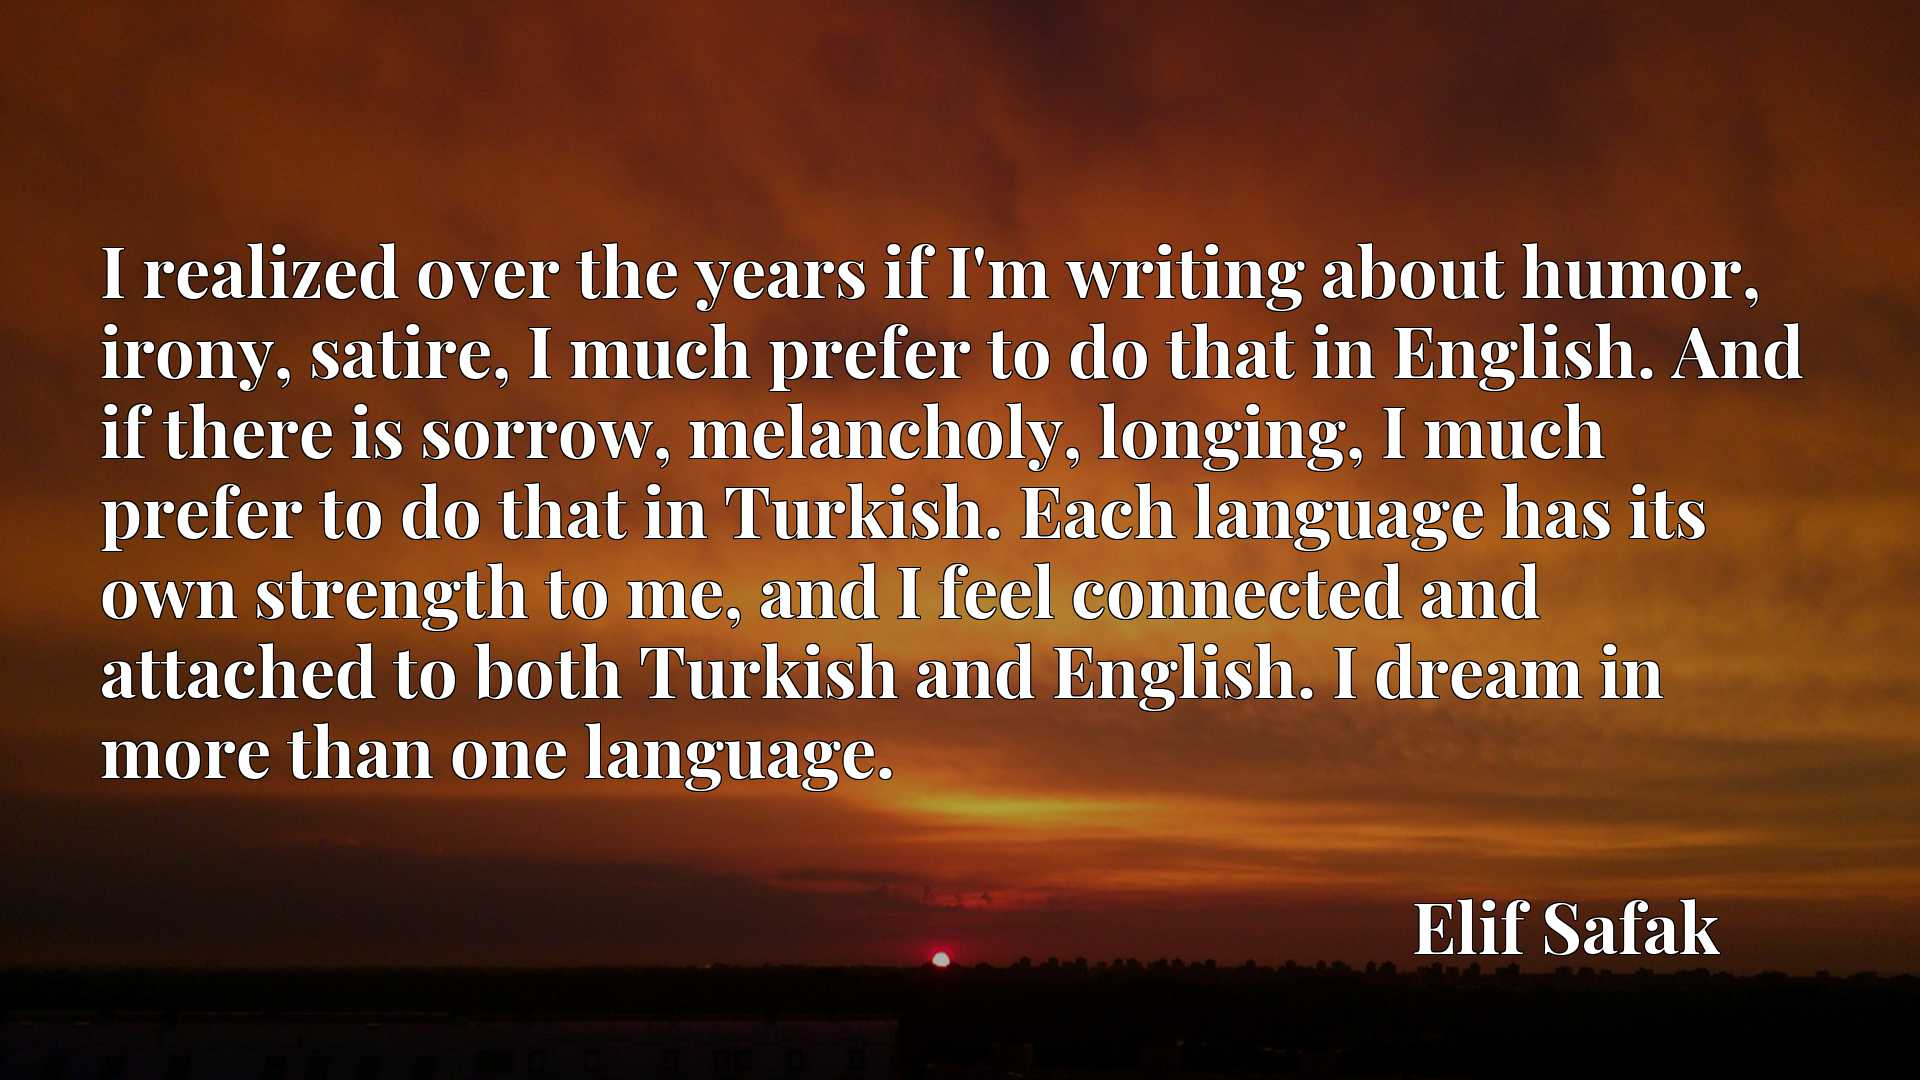 I realized over the years if I'm writing about humor, irony, satire, I much prefer to do that in English. And if there is sorrow, melancholy, longing, I much prefer to do that in Turkish. Each language has its own strength to me, and I feel connected and attached to both Turkish and English. I dream in more than one language.